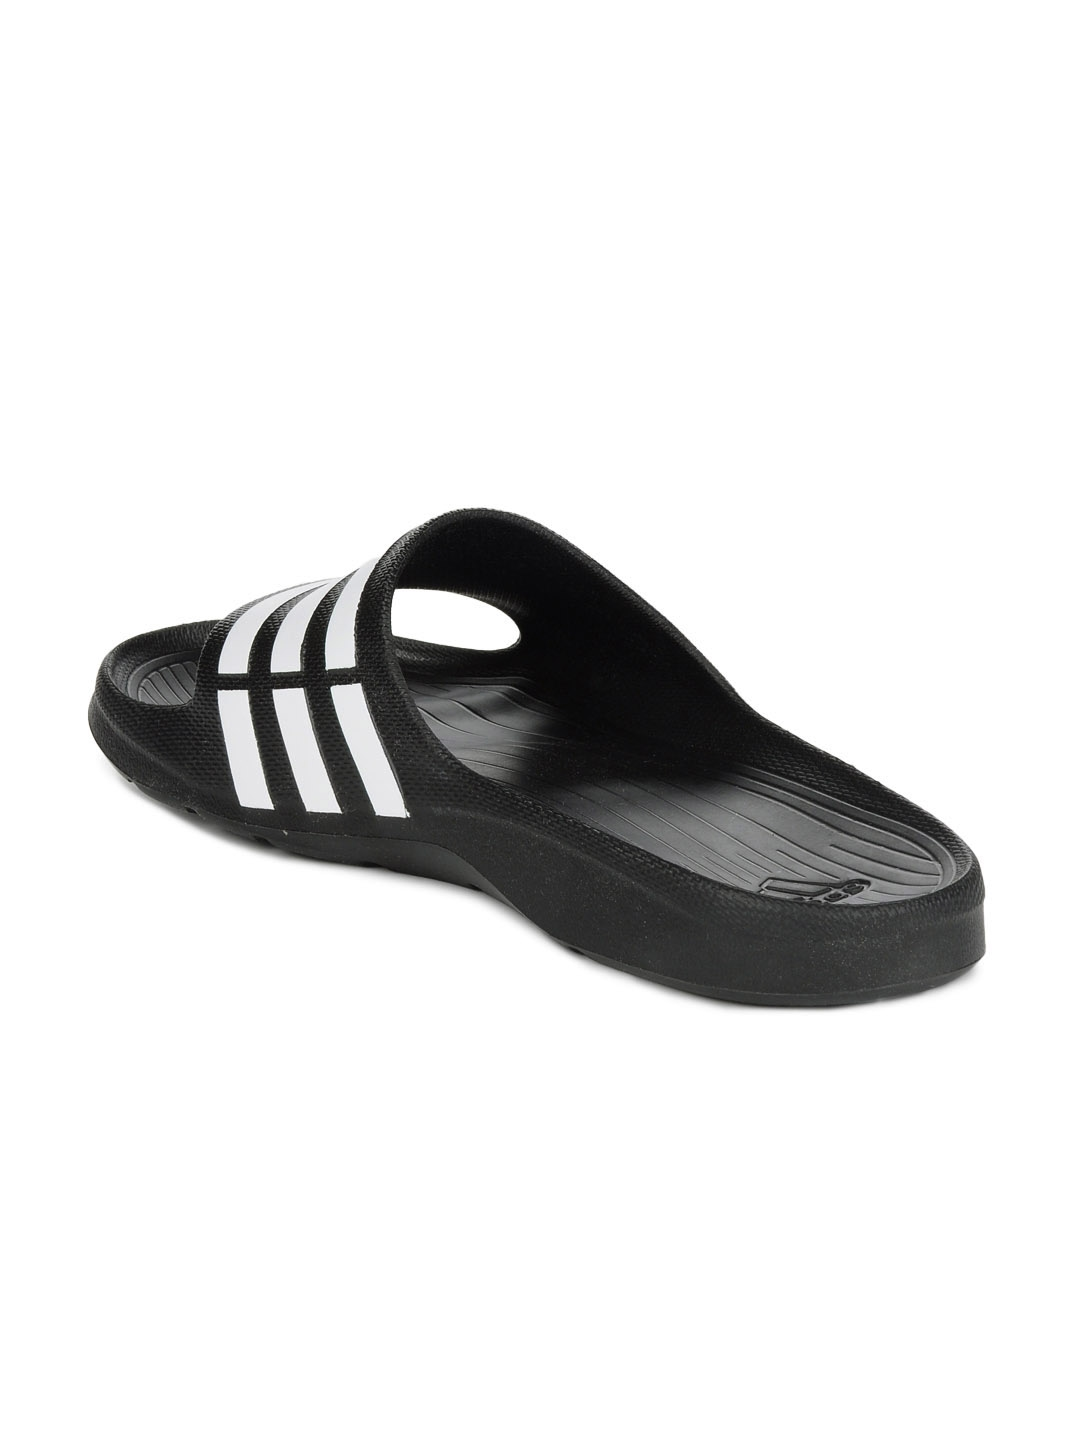 581ff6b1c Buy ADIDAS Men Black Duramo Slide Flip Flops - Flip Flops for Men ...